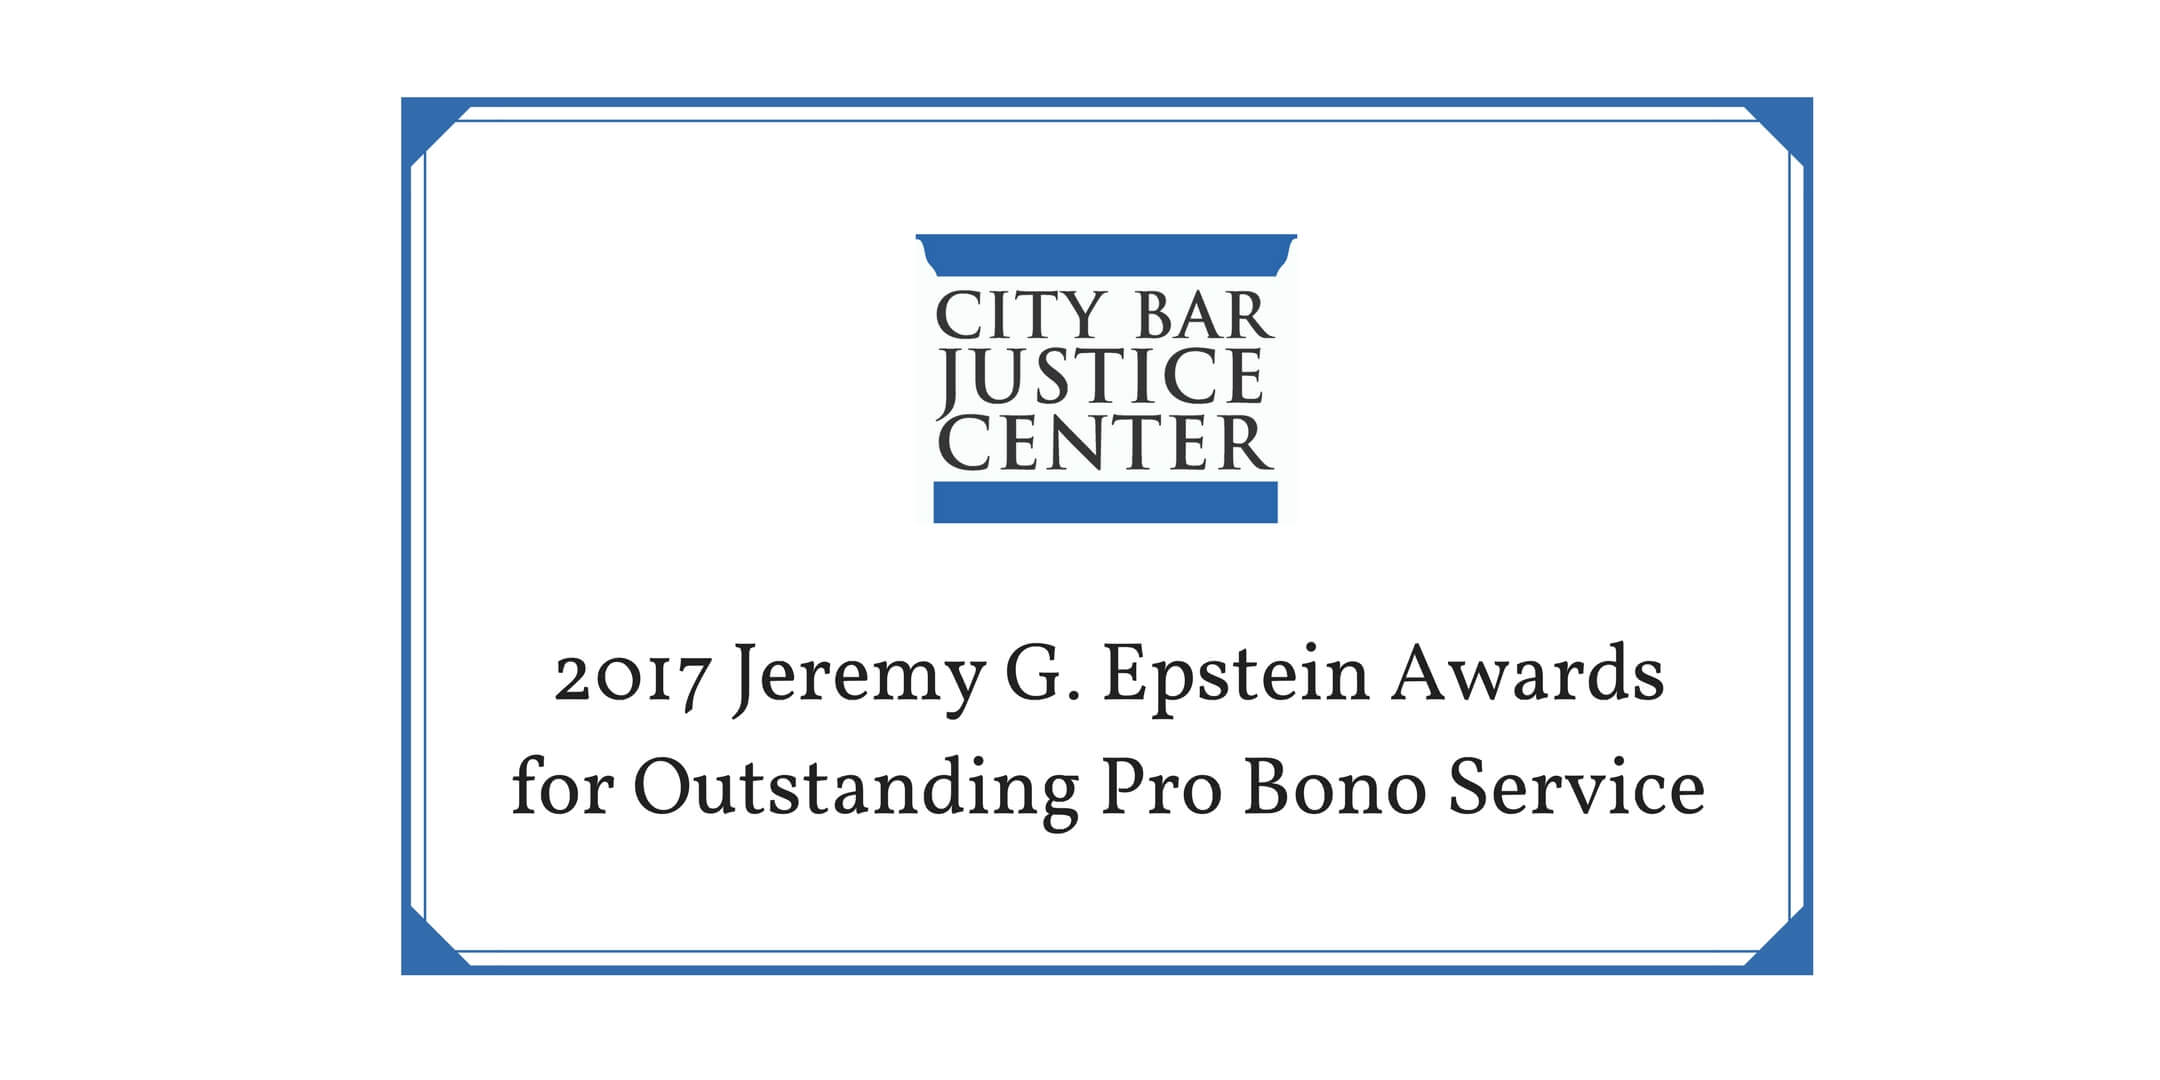 2017 Jeremy G. Epstein Awards